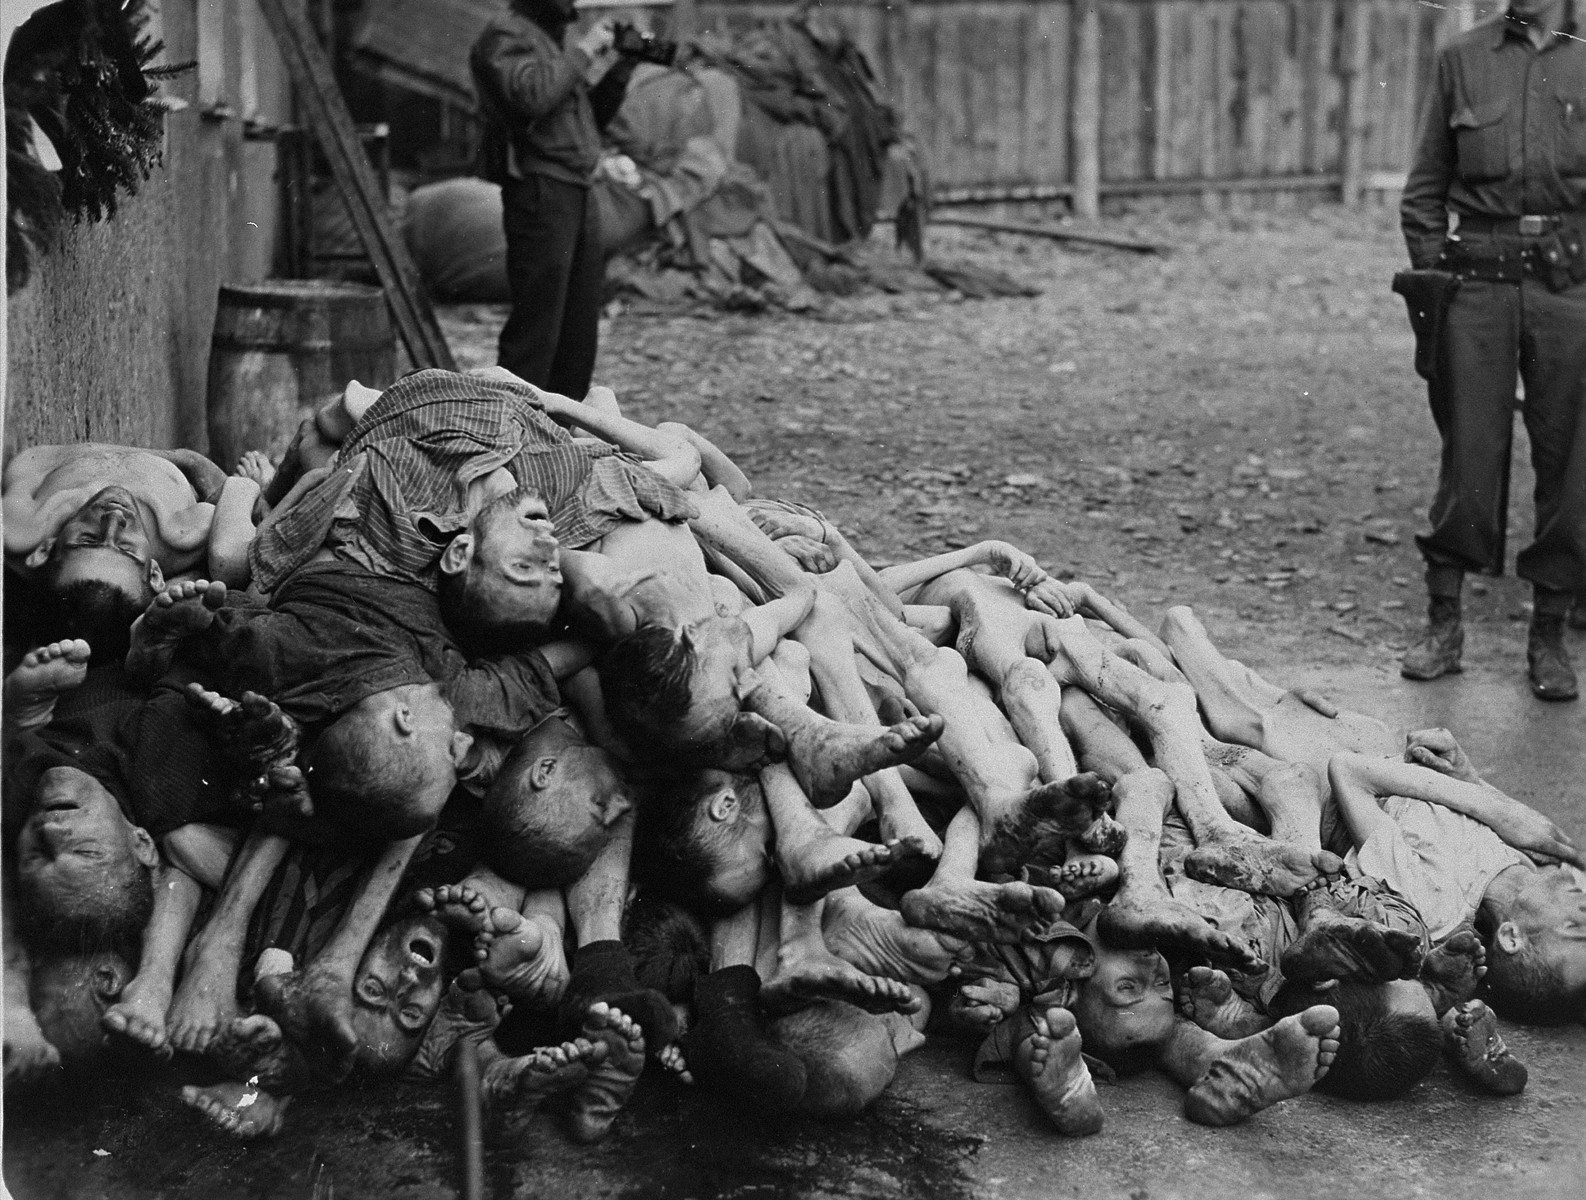 American soldiers view a pile of corpses found behind the crematorium in the newly liberated Buchenwald concentration camp.